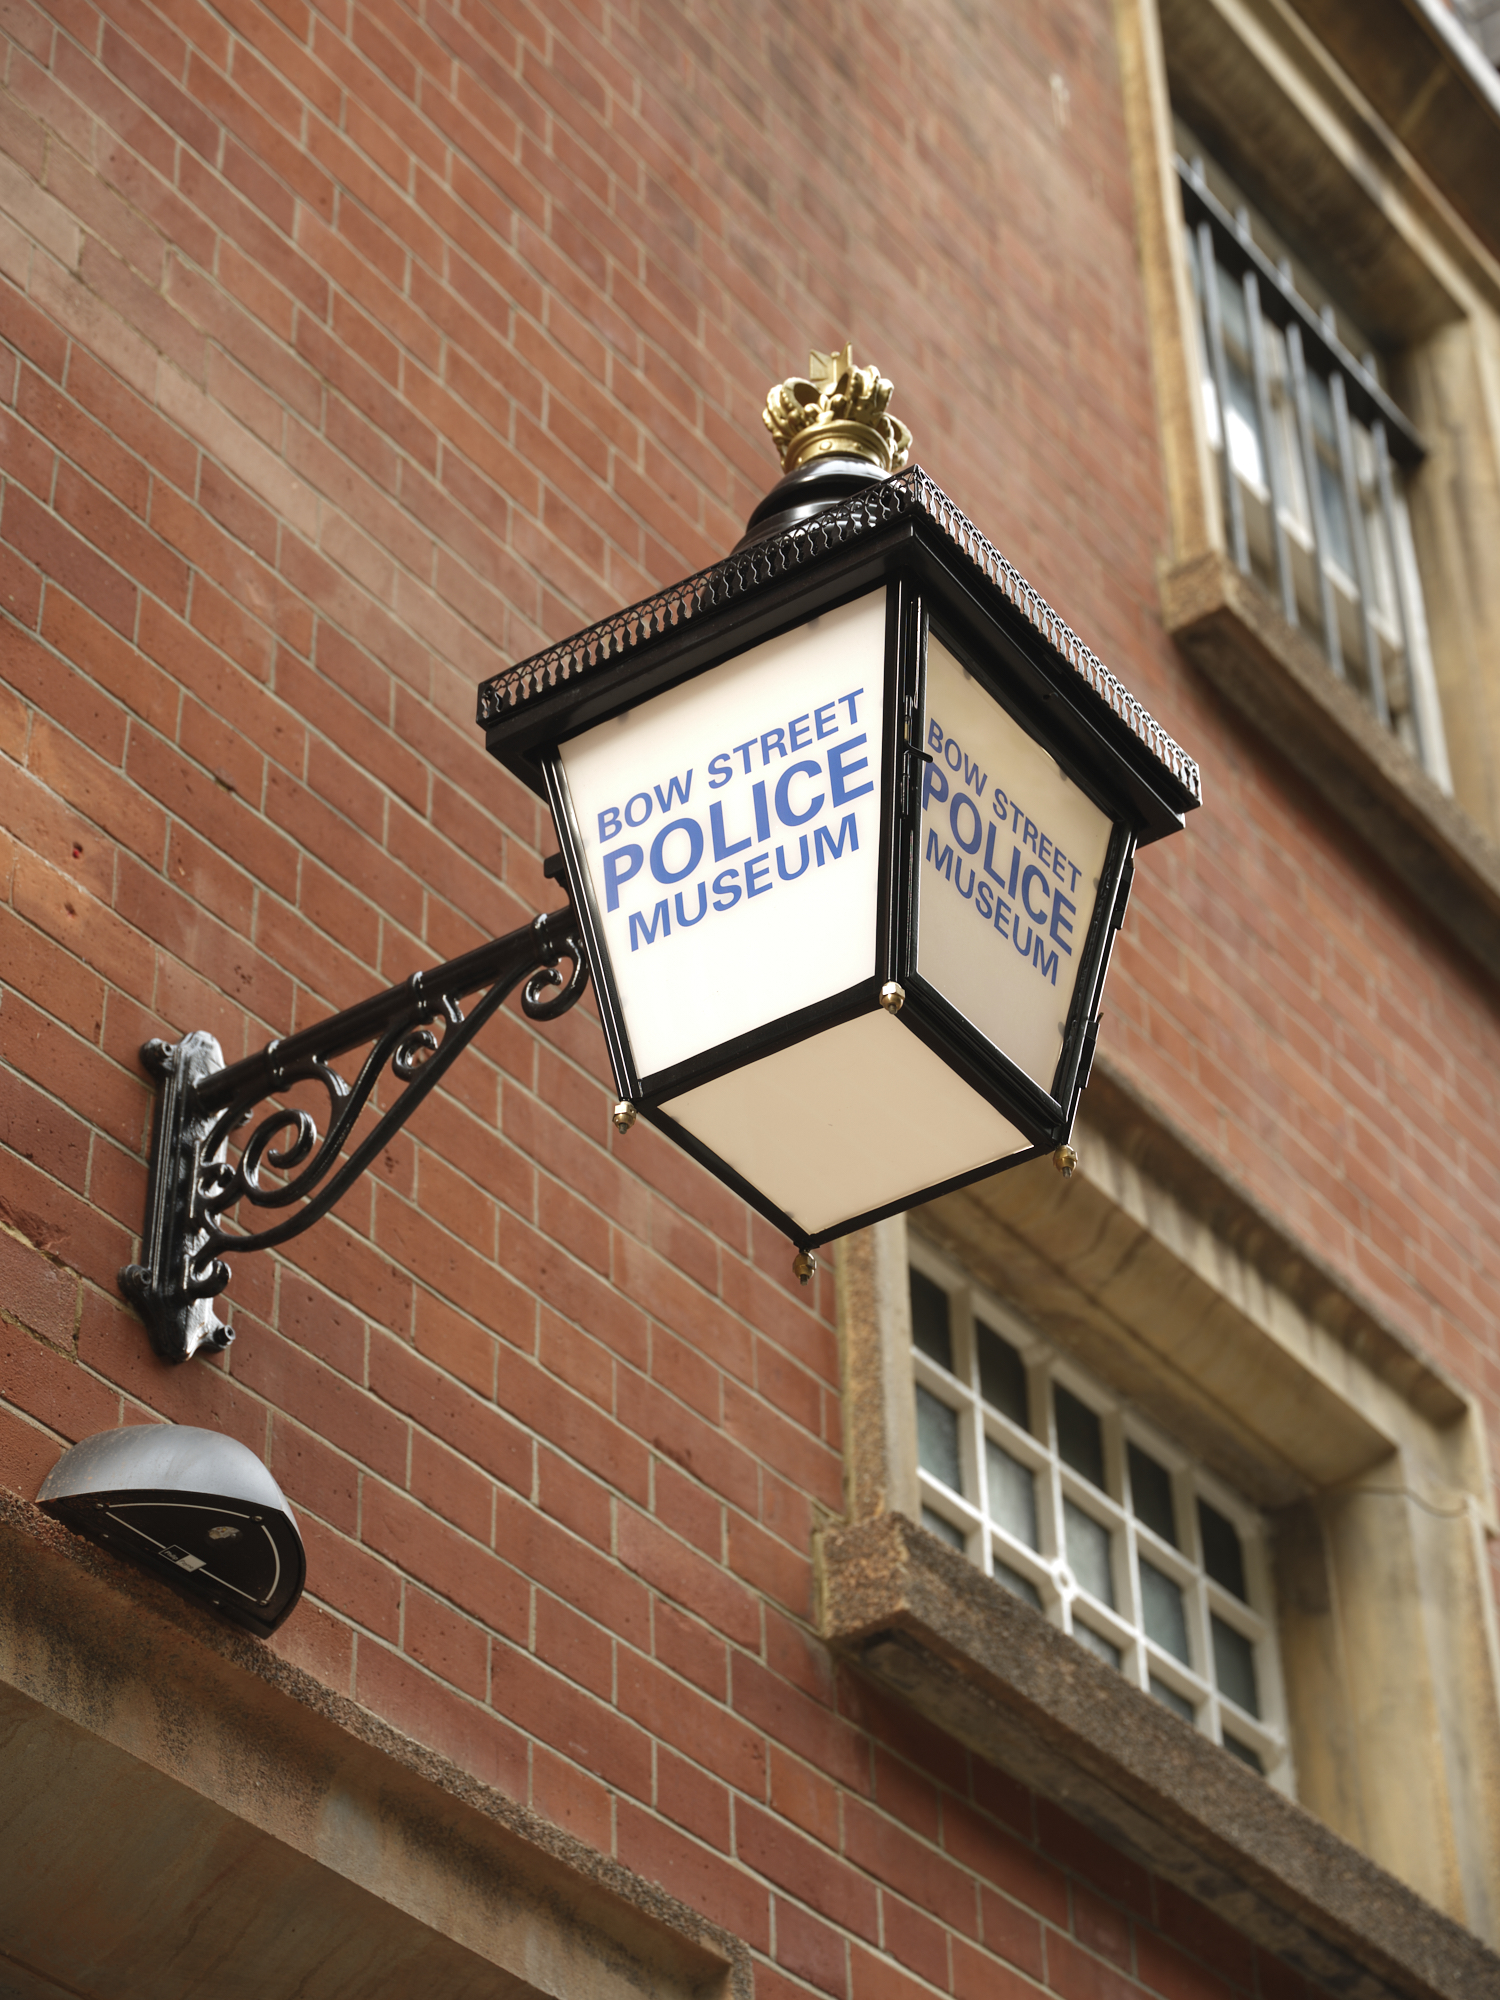 Bow Street police station to be reborn as a museum